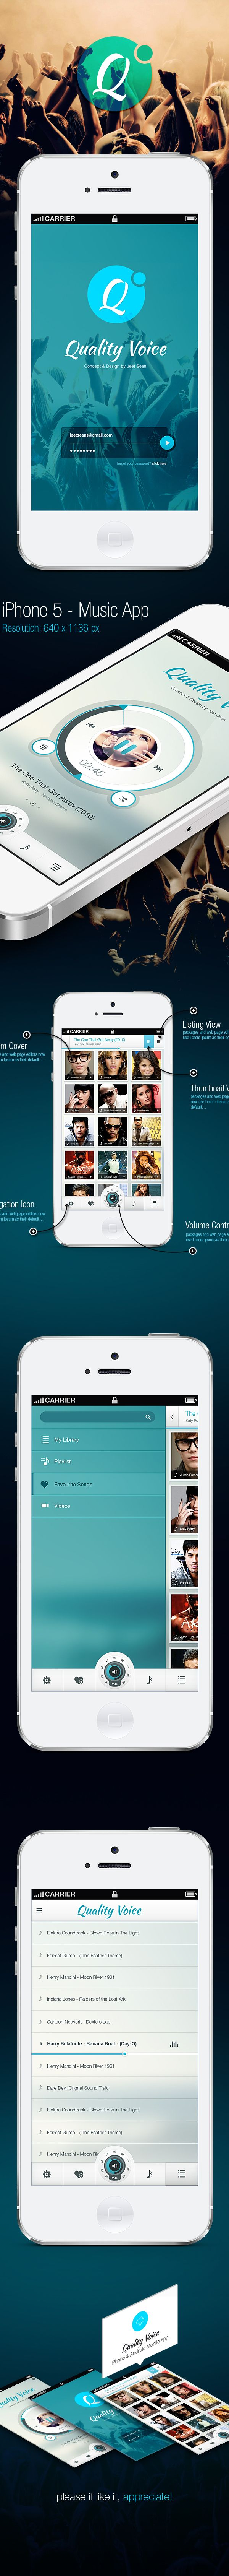 Quality Voice - Mobile App UI on Behance